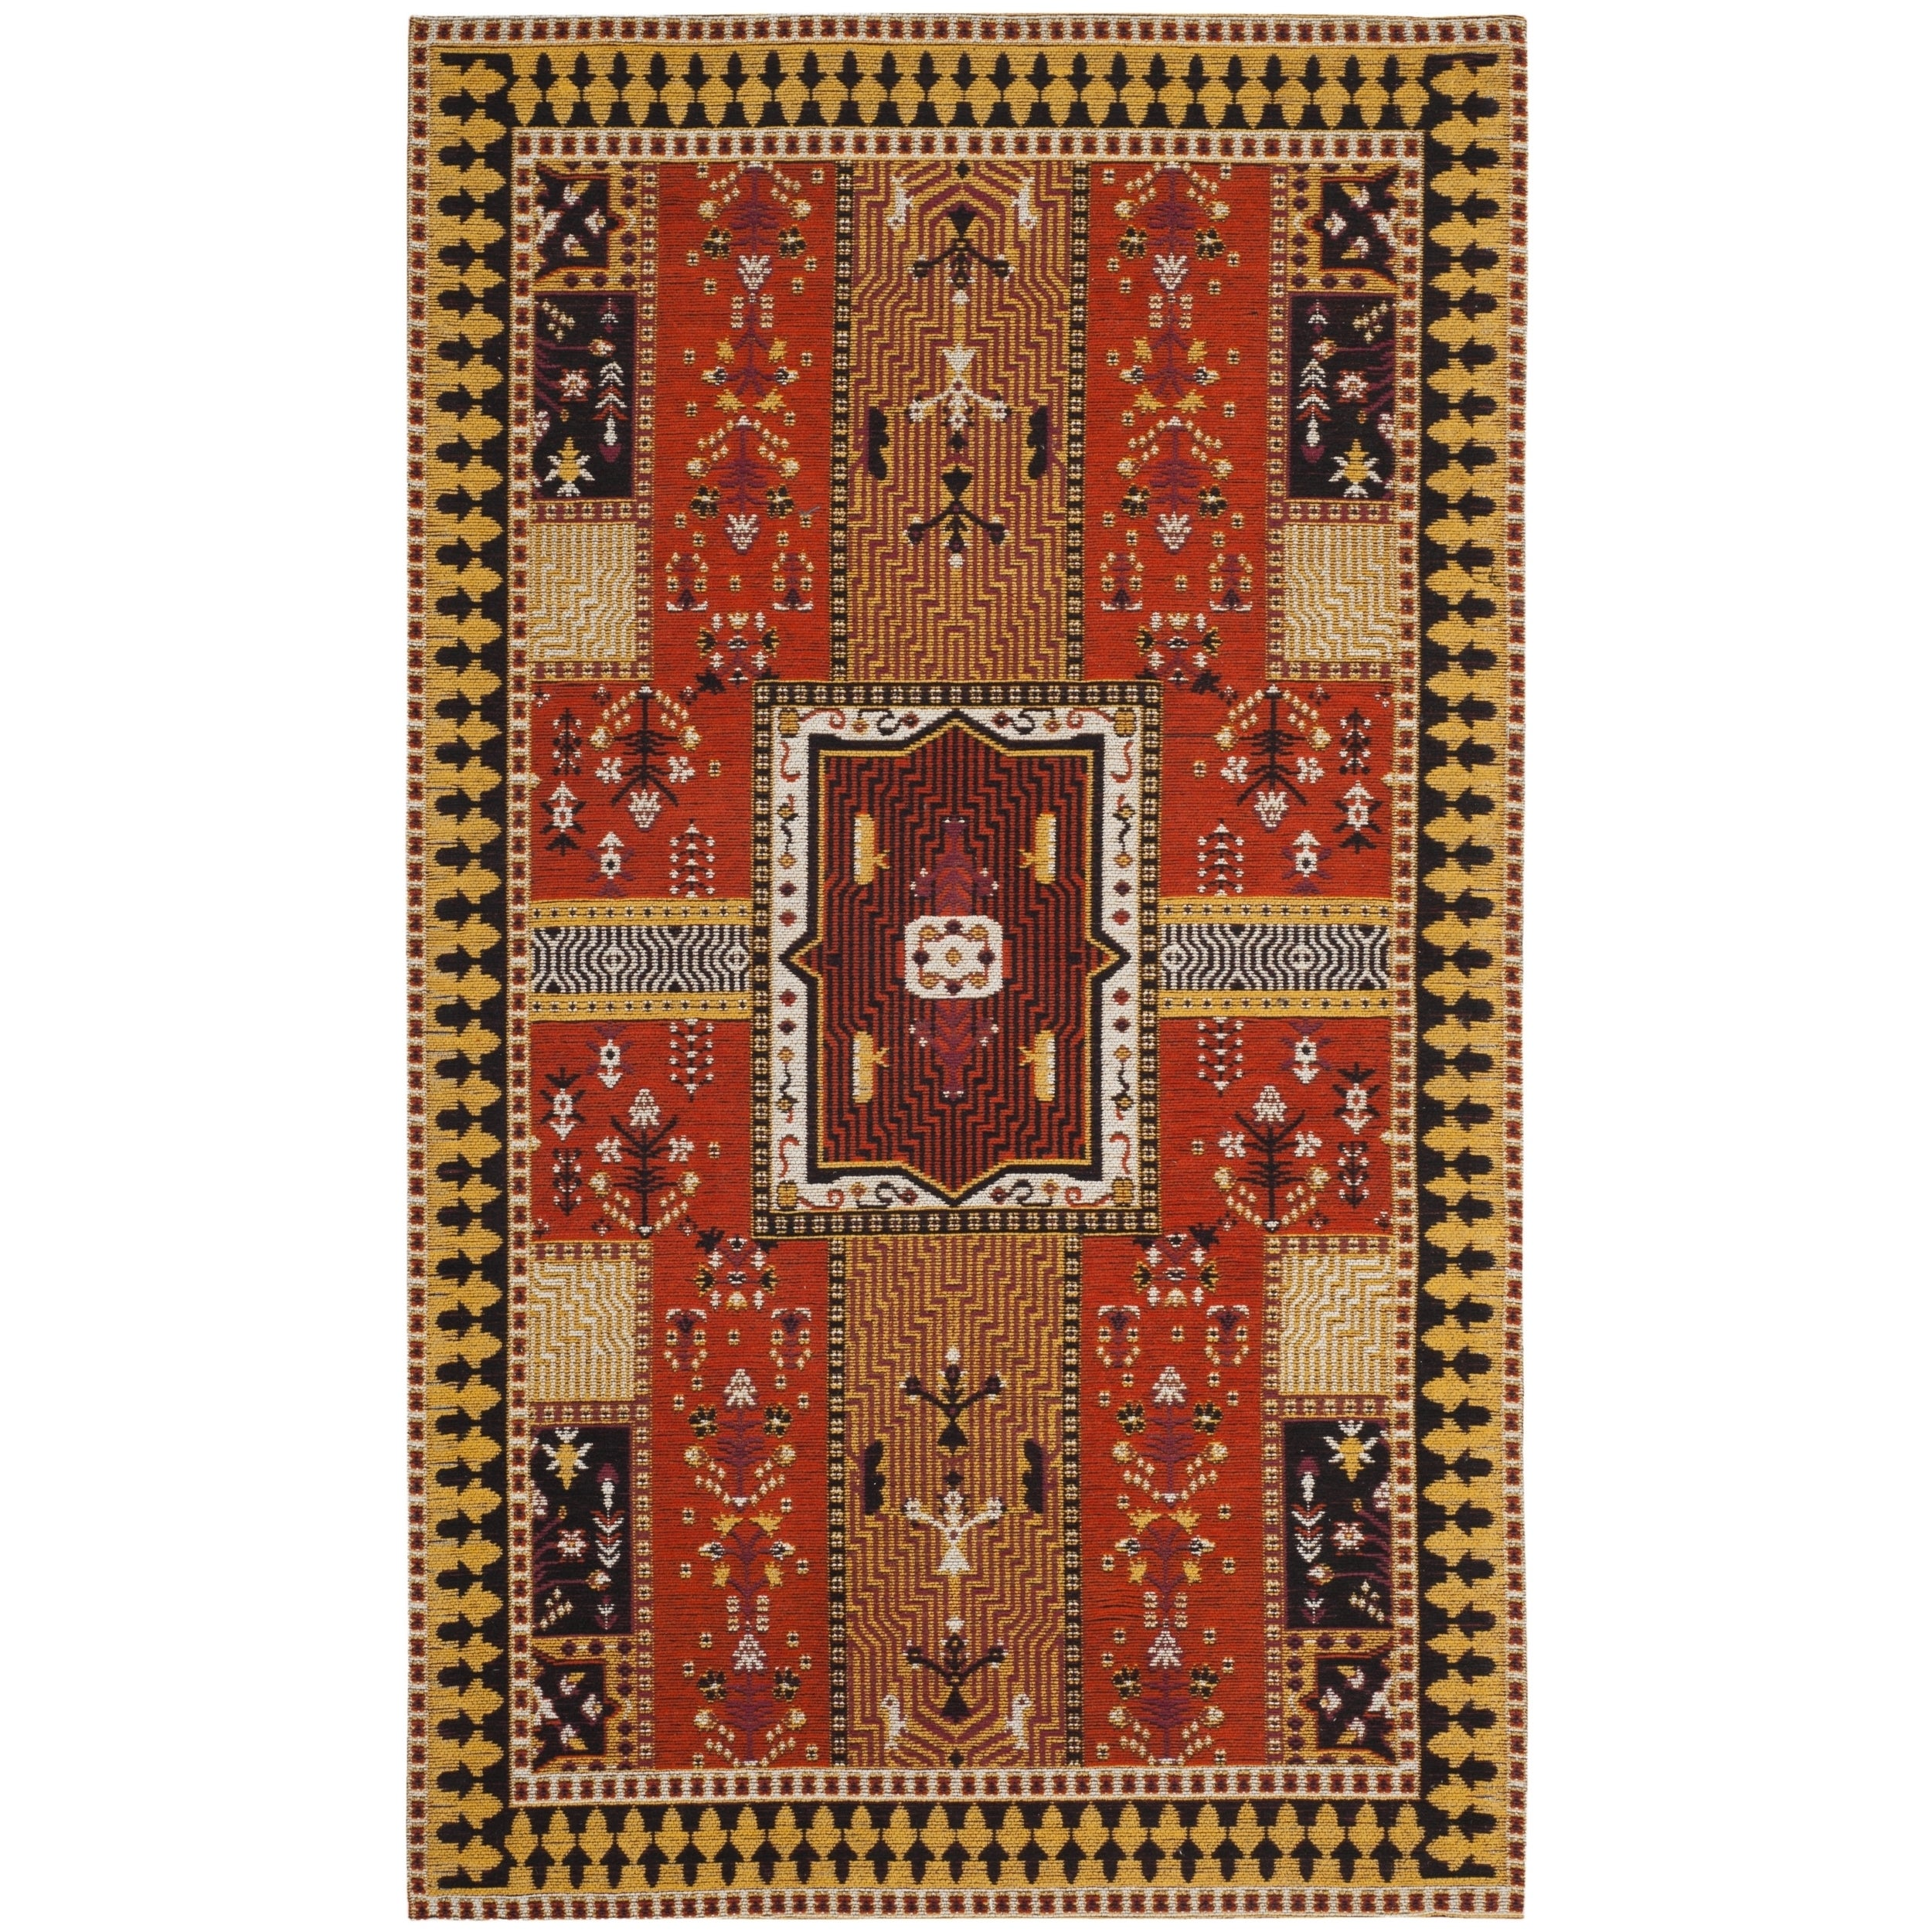 Safavieh Classic Vintage Bohemian Orange/ Gold Cotton Rug...